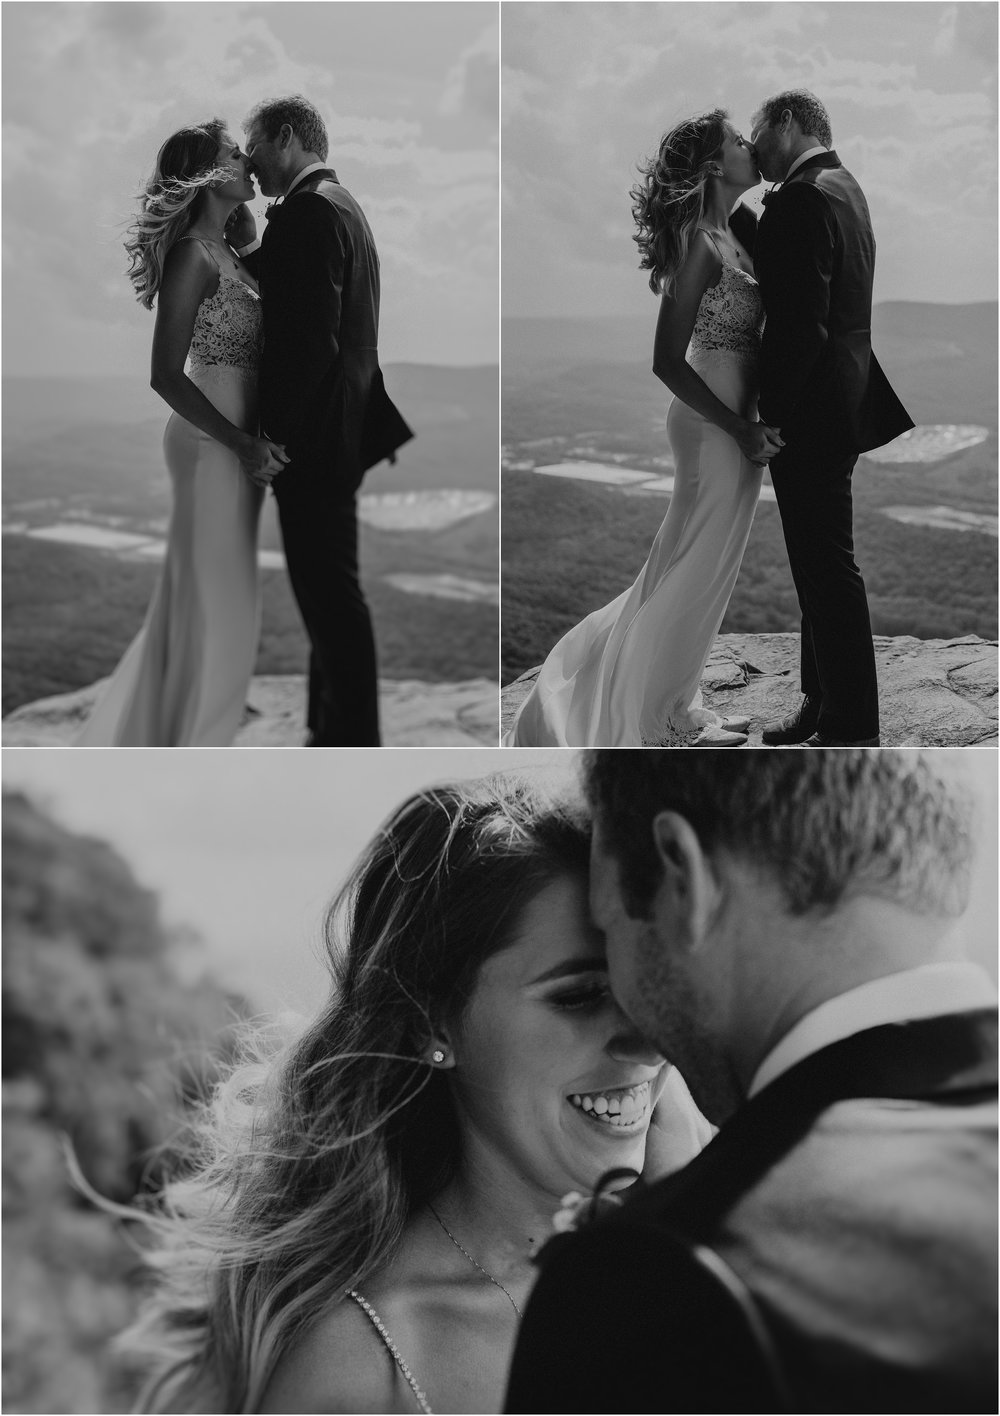 Intimate black and white images atop Sunset Rock of the bride and groom